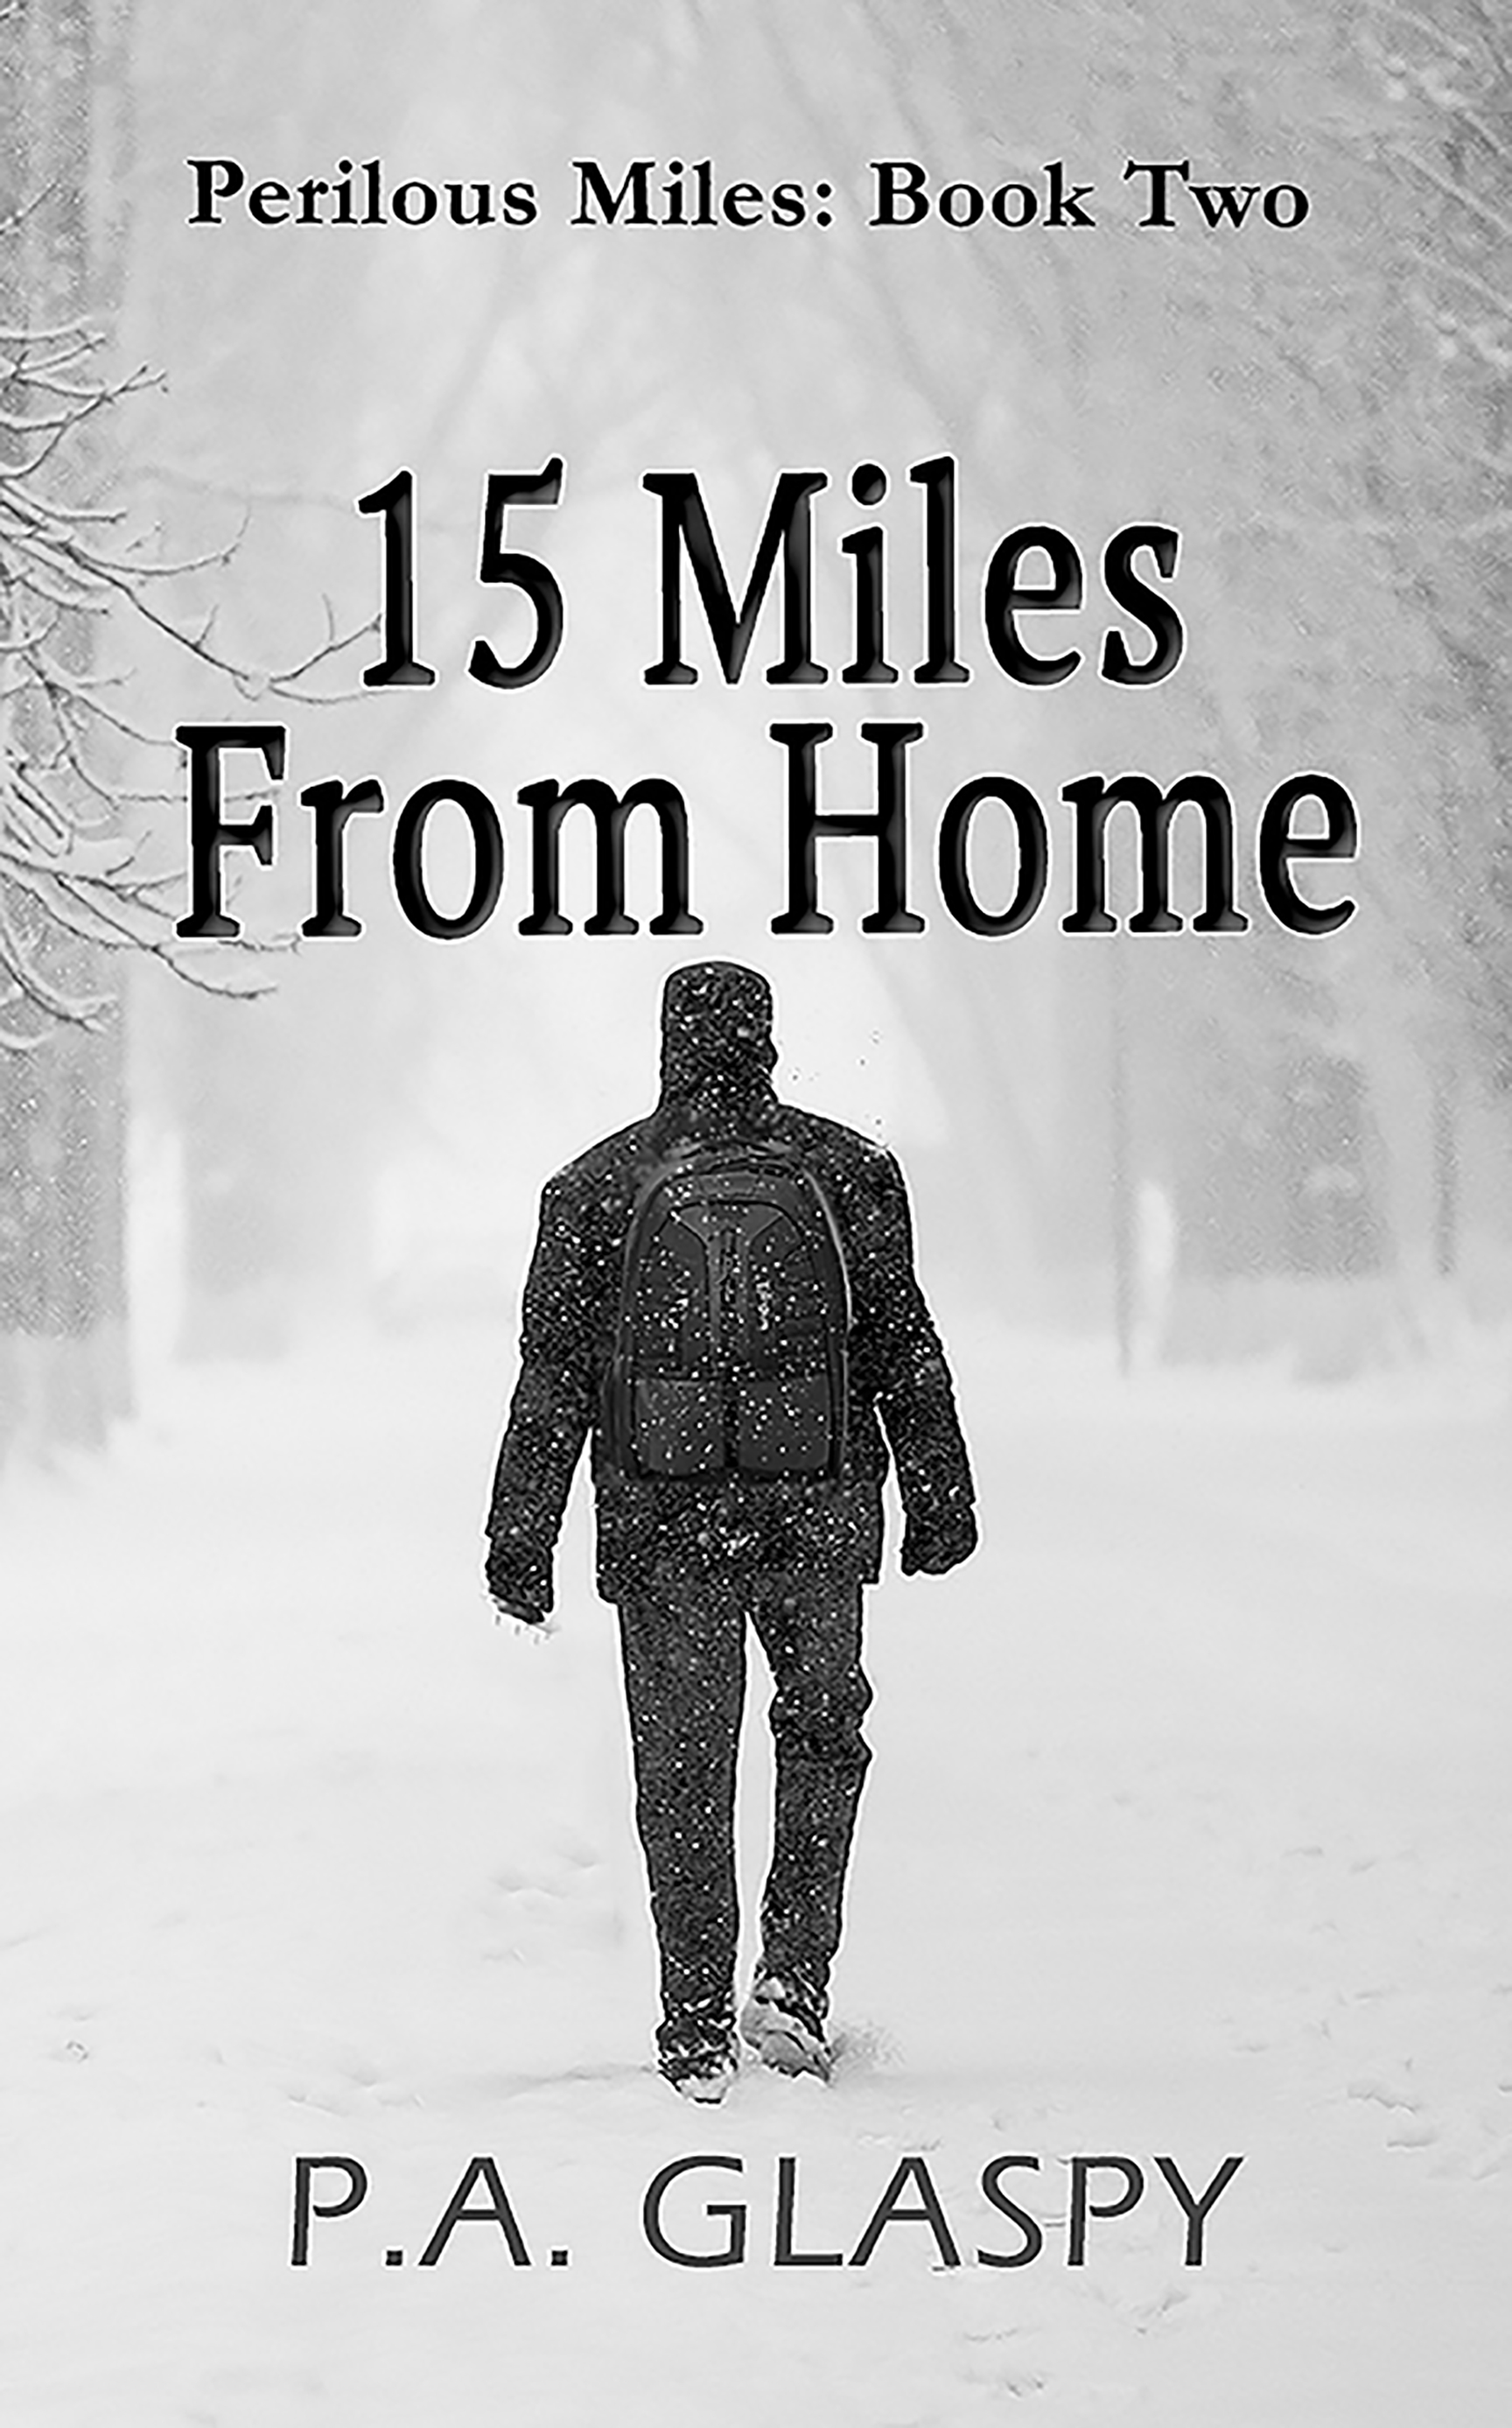 15 Miles From Home - Perilous Miles Book 2